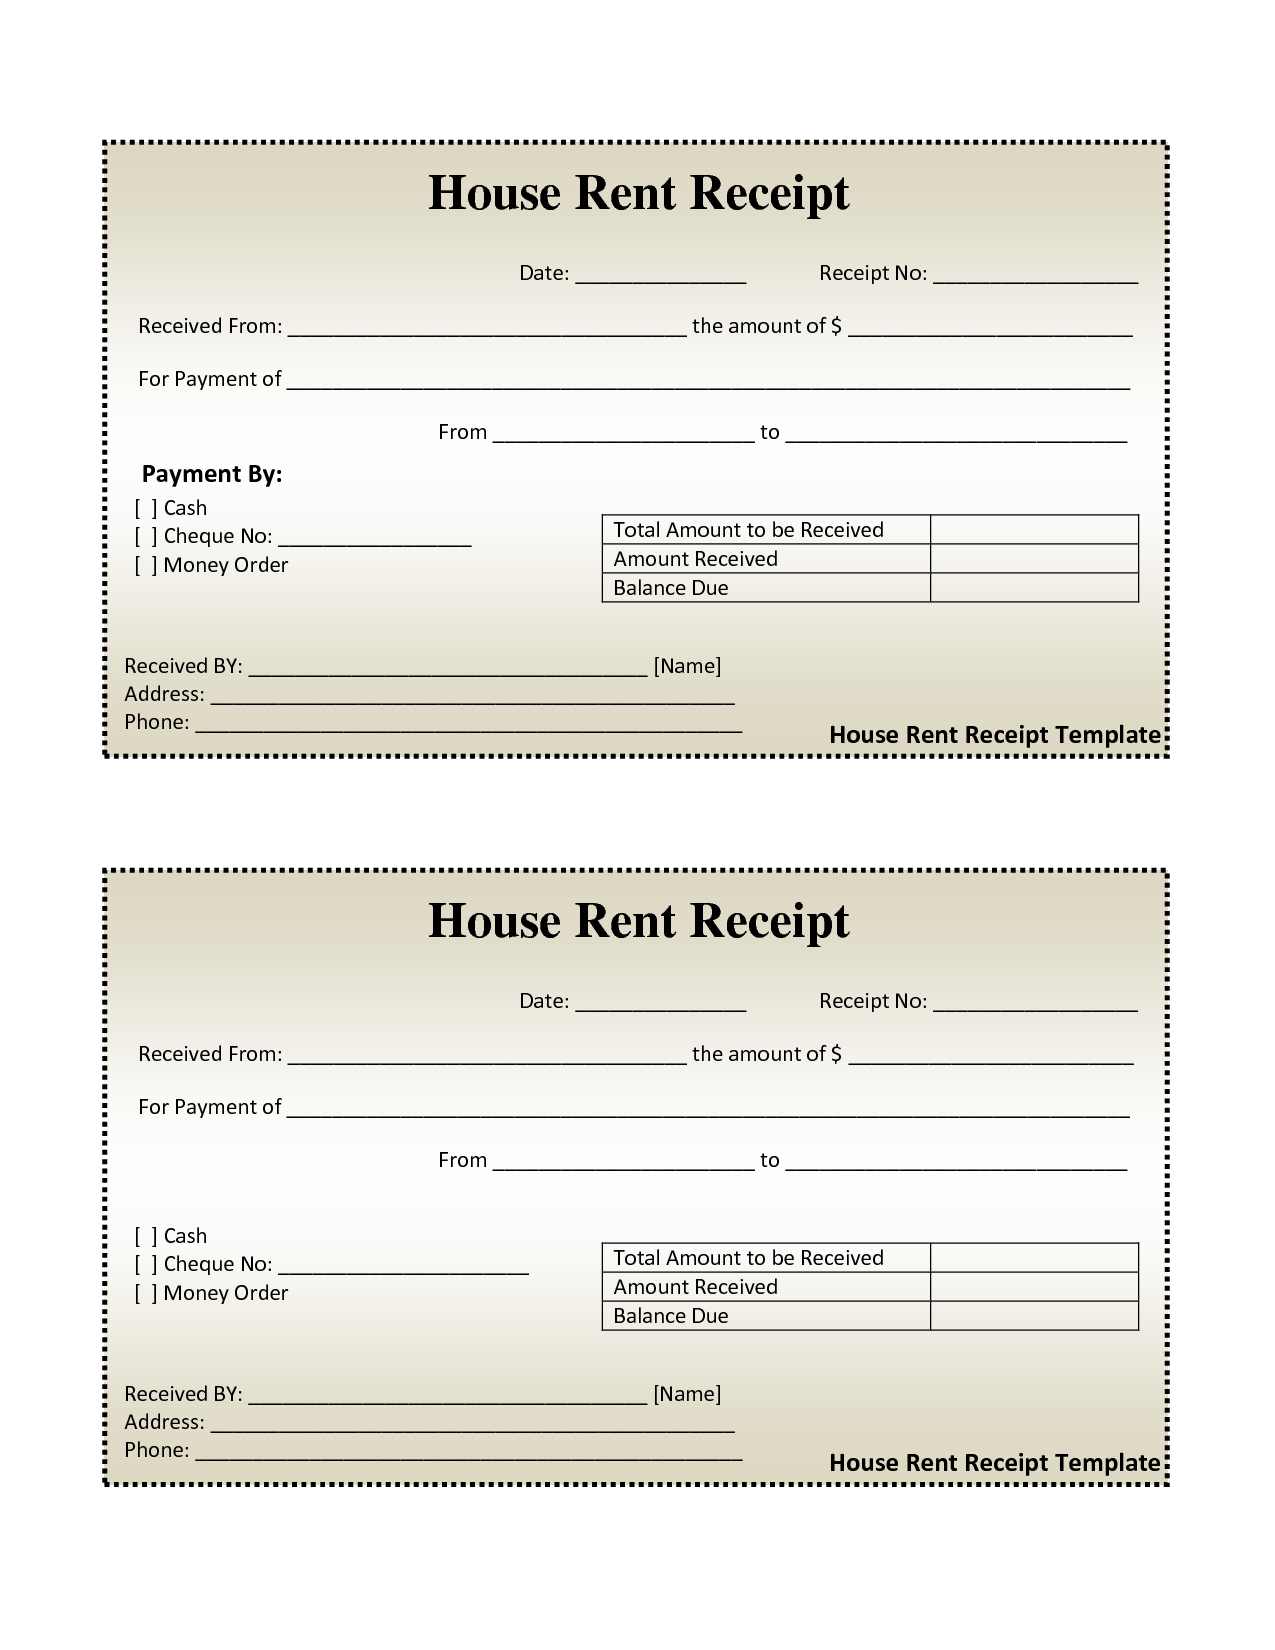 Cash Invoice Sample and Free House Rental Invoice House Rent Receipt Template Doc